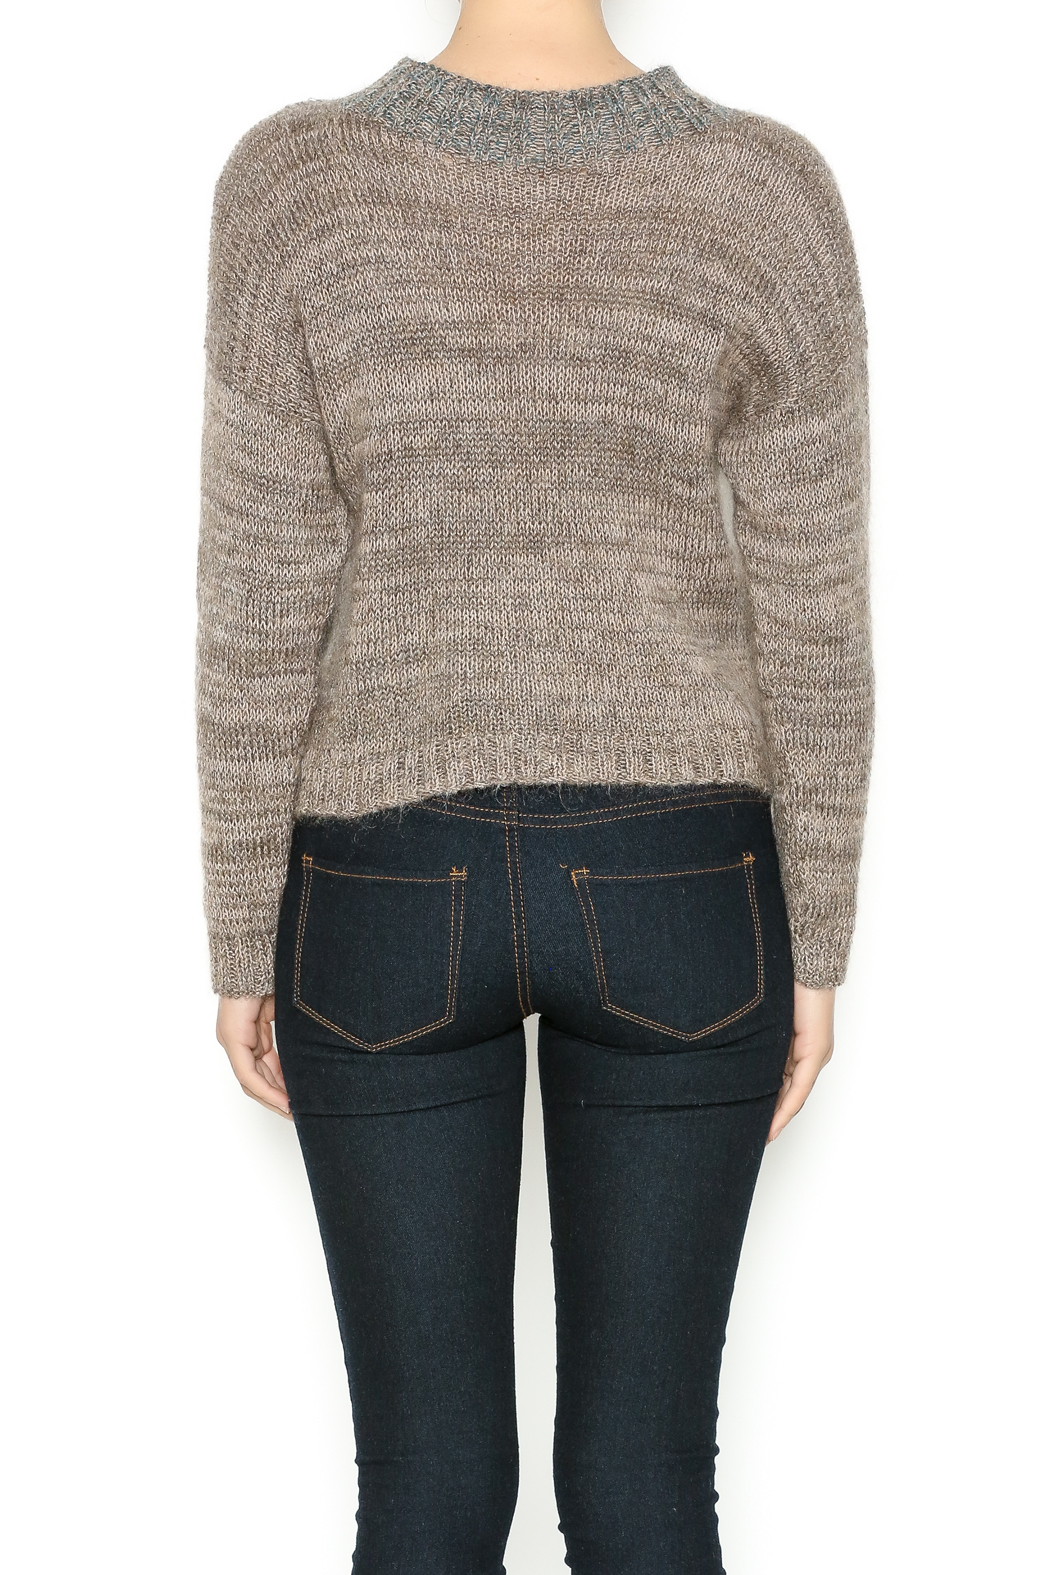 DC KNITS Tan Mohair Sweater - Back Cropped Image